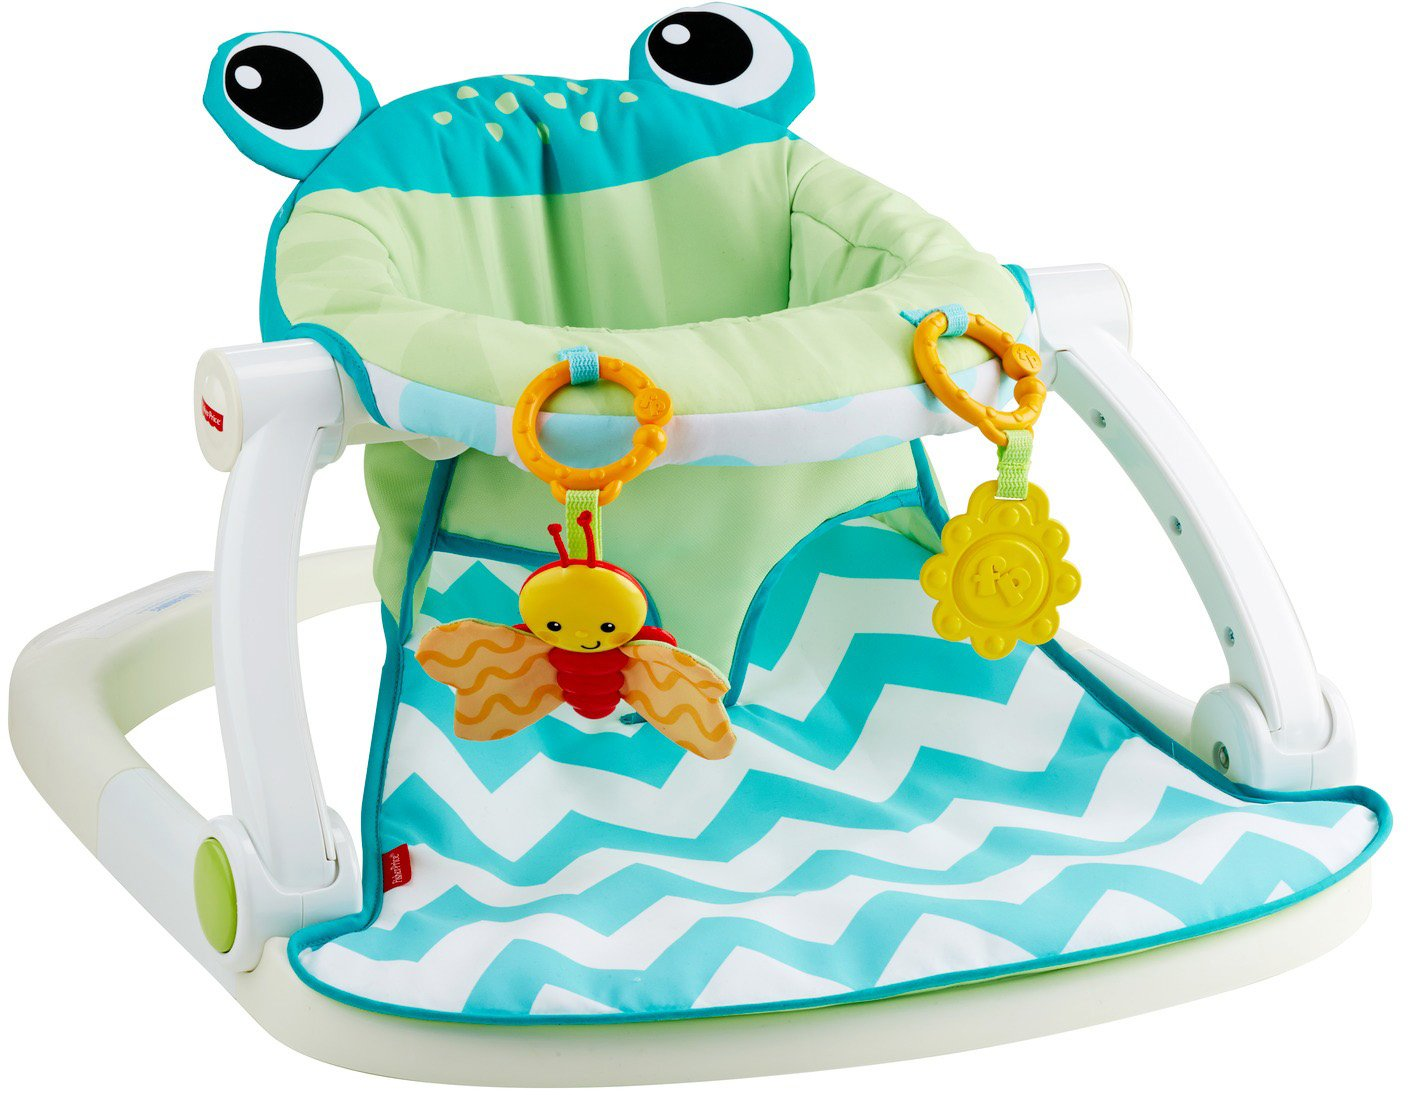 Fisher Price Sit Me Up Floor Seat, Citrus Frog by Fisher Price